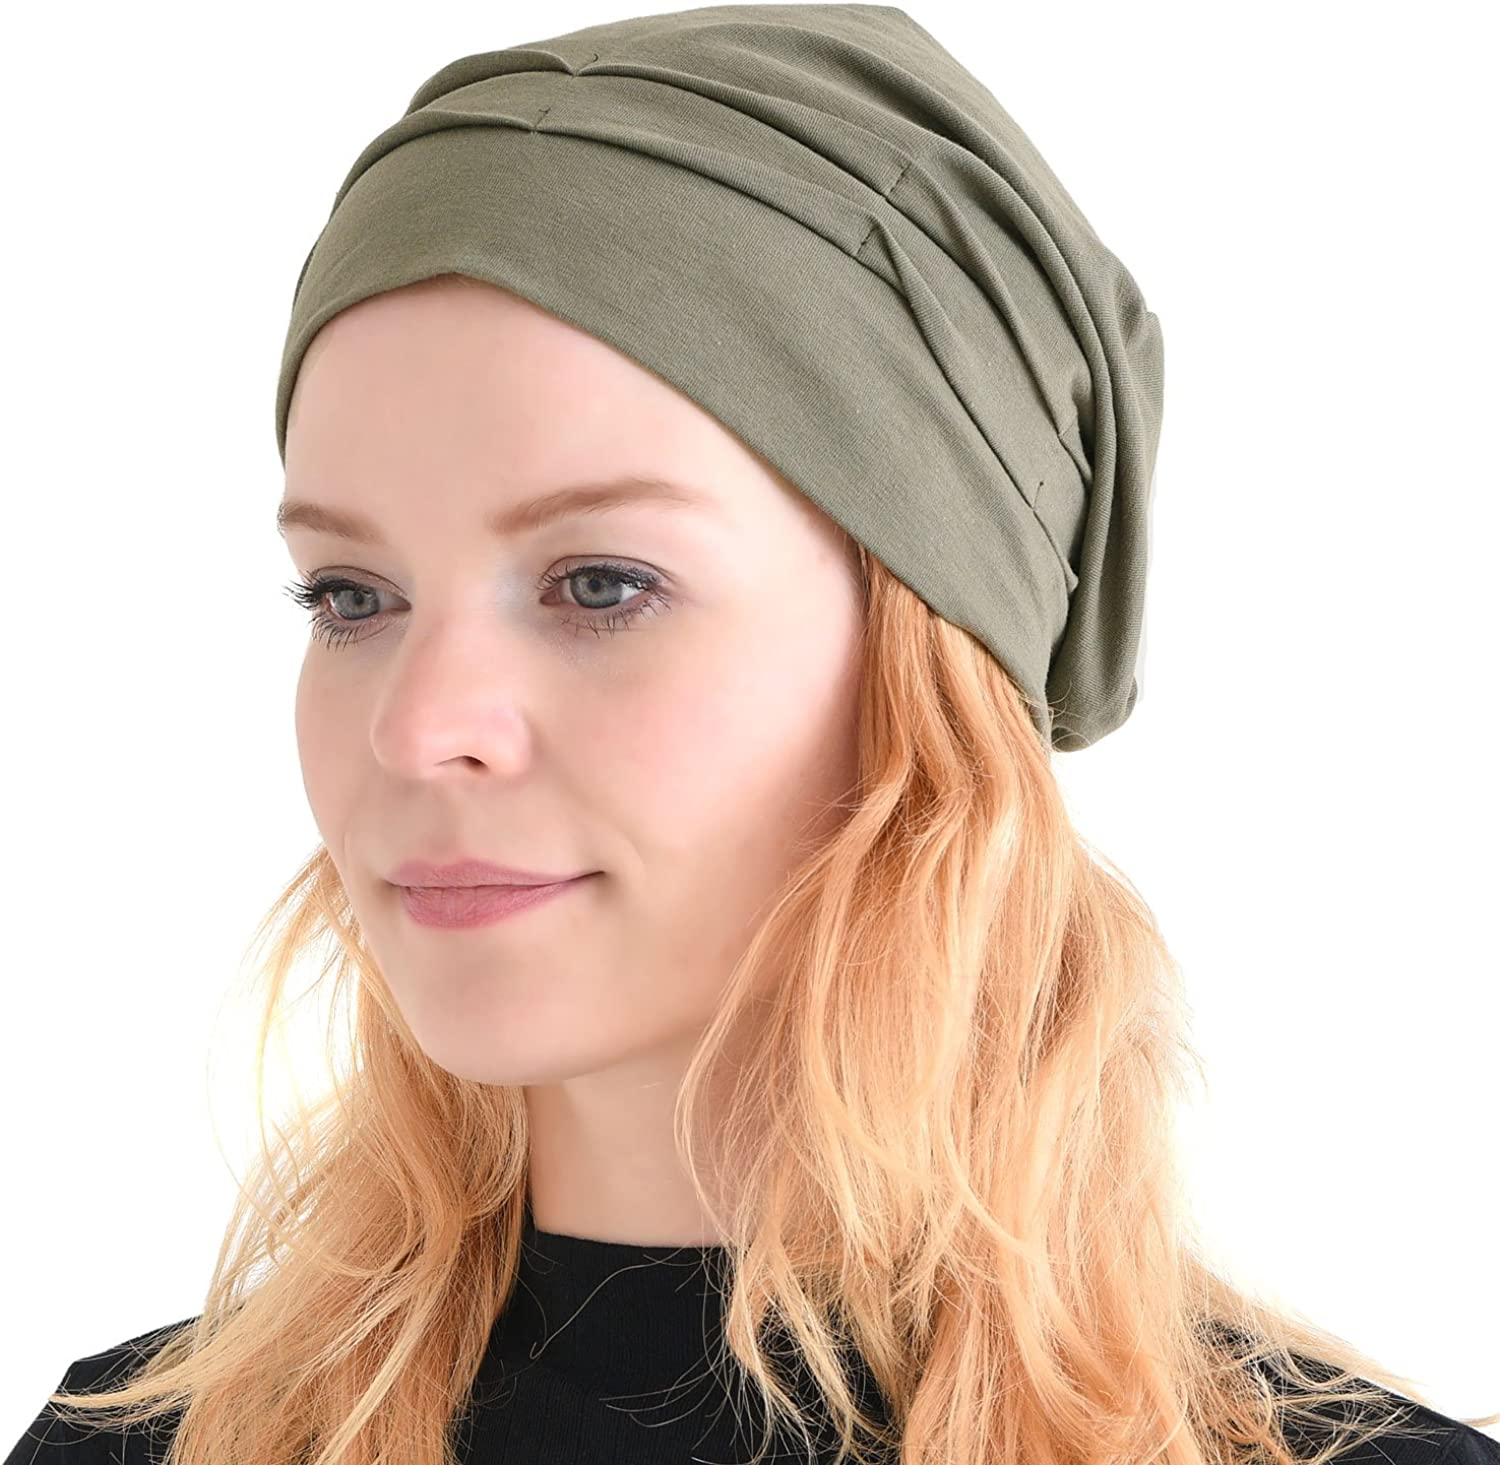 Casualbox Mens Slouch Beanie Hat Womens Fashion Beret Stretch Elastic